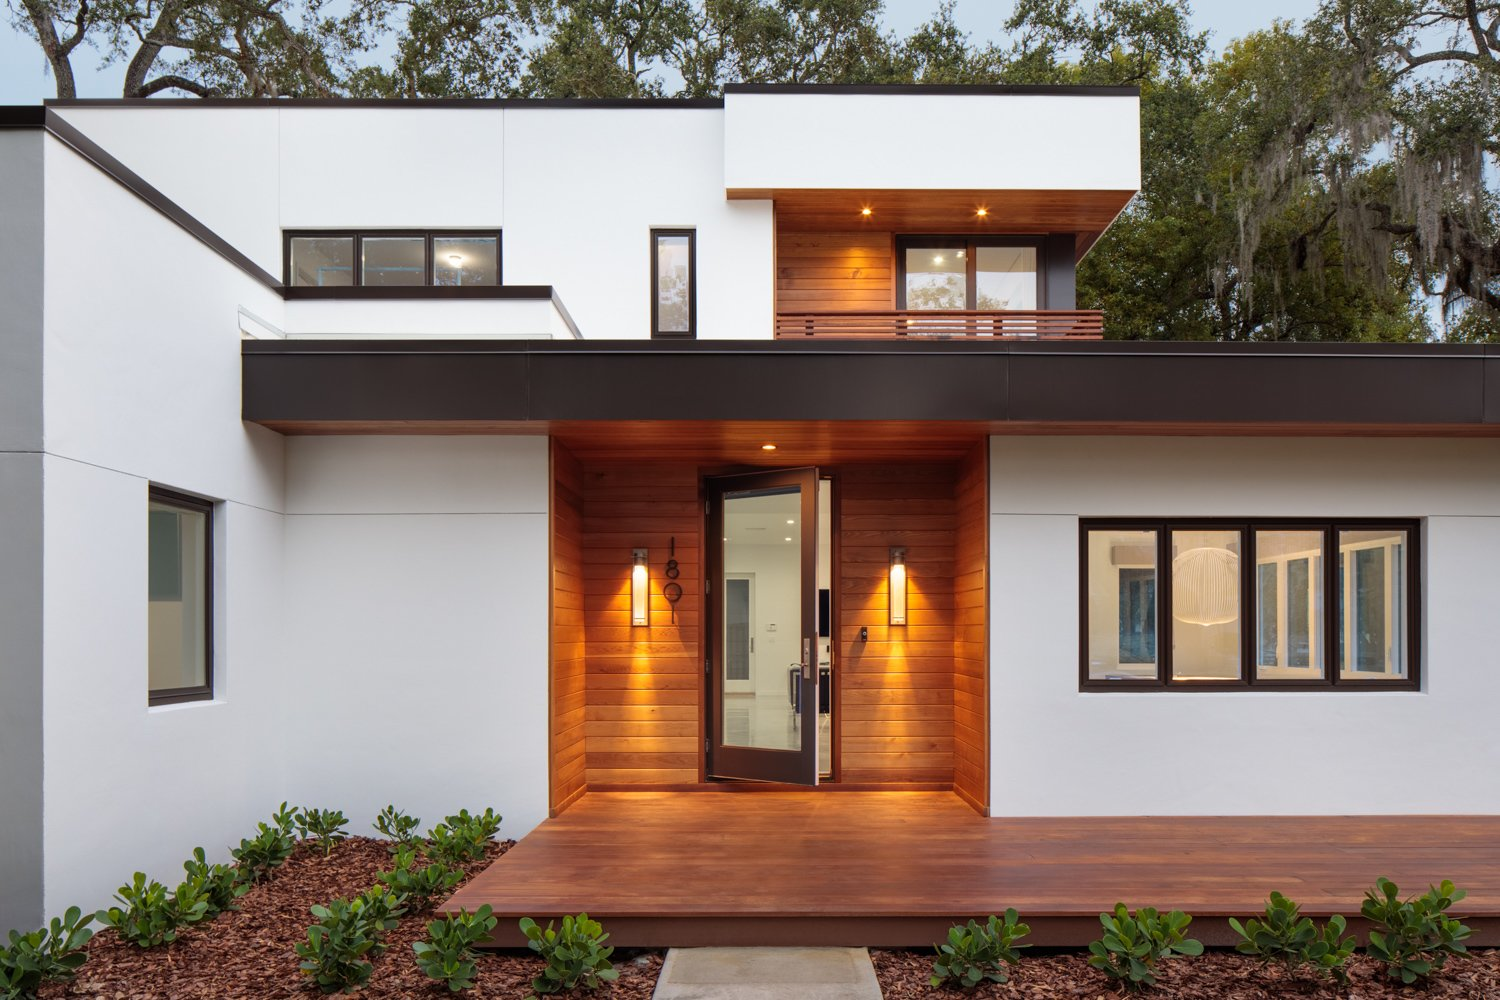 the cedar clad recessed entryway of hyde park house with a generous front deck warmly welcomes visitors